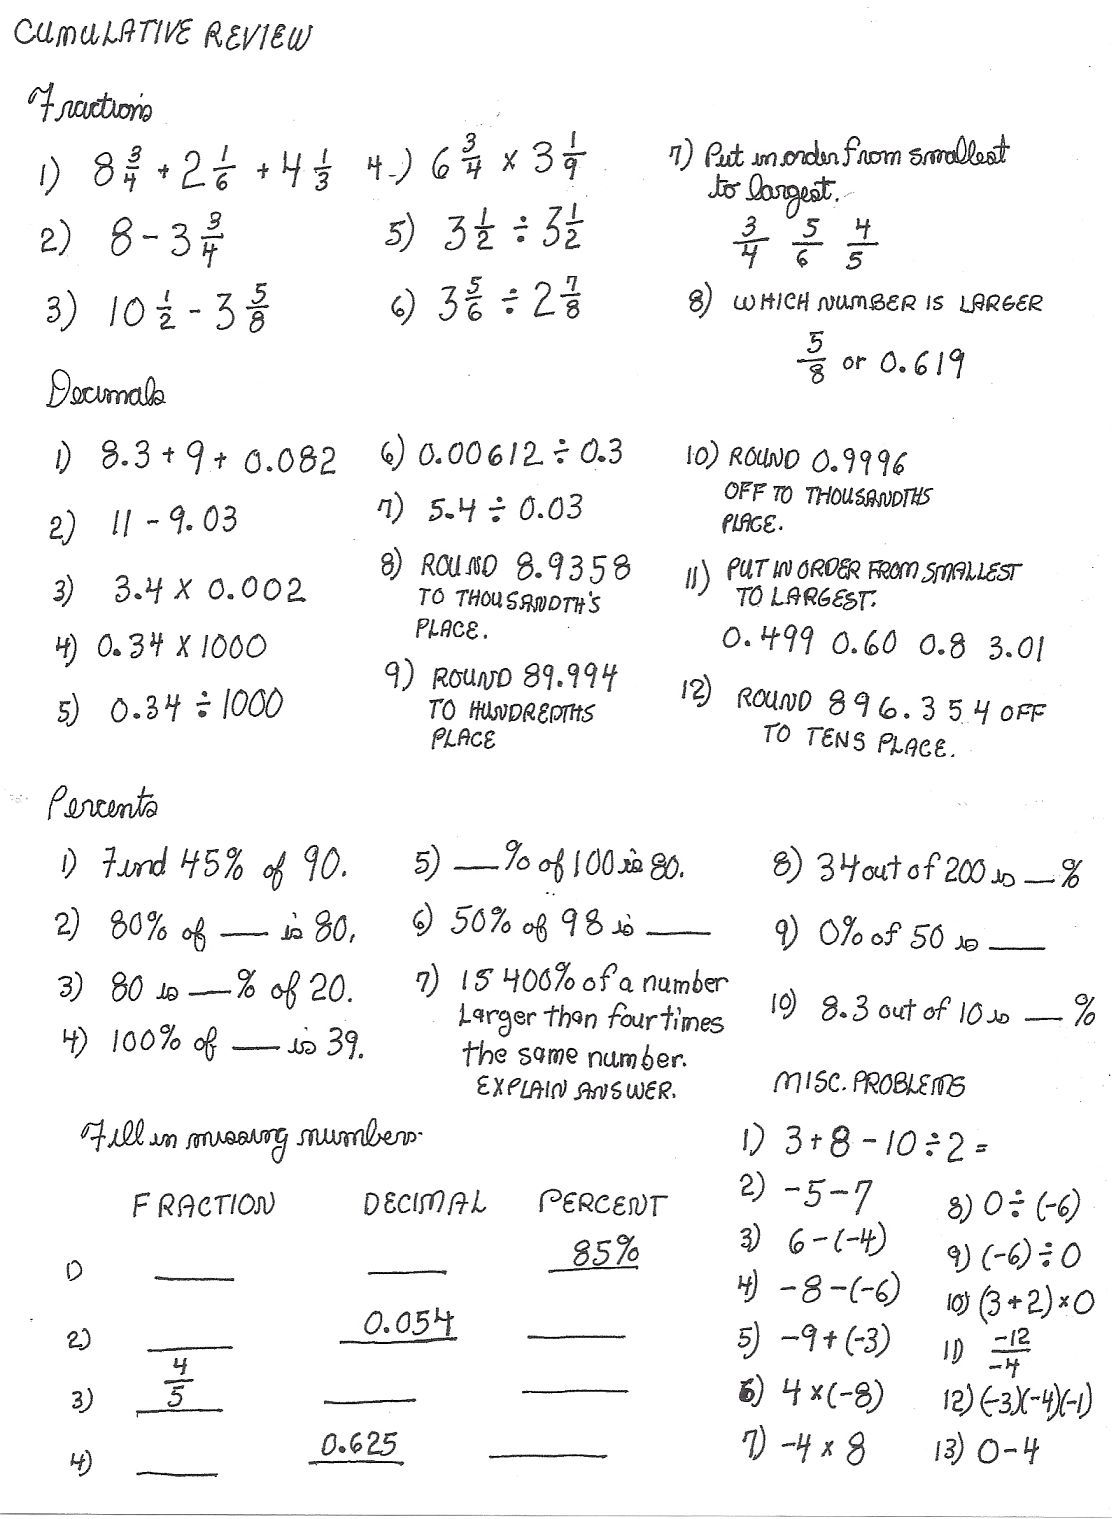 Cobb Adult Ed Math Review Problems For D Level Tabe